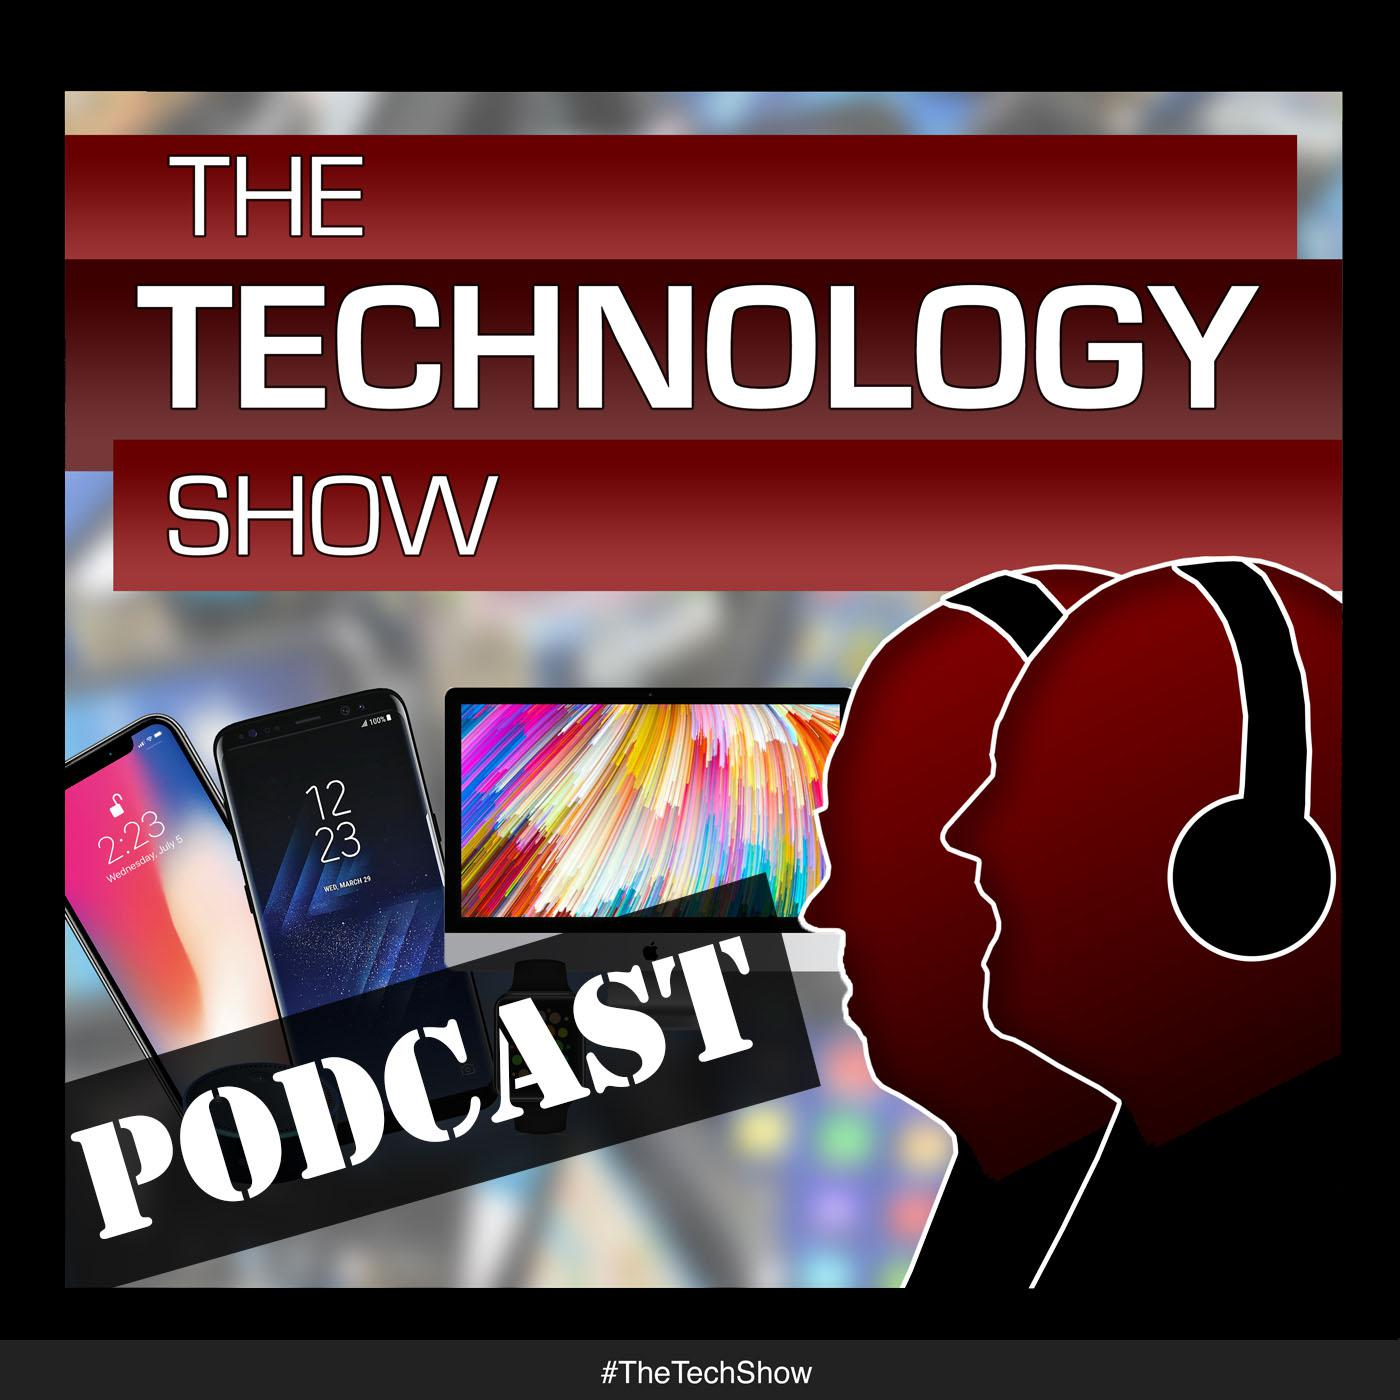 The Technology Show (podcast) - Rich Tracey | Listen Notes